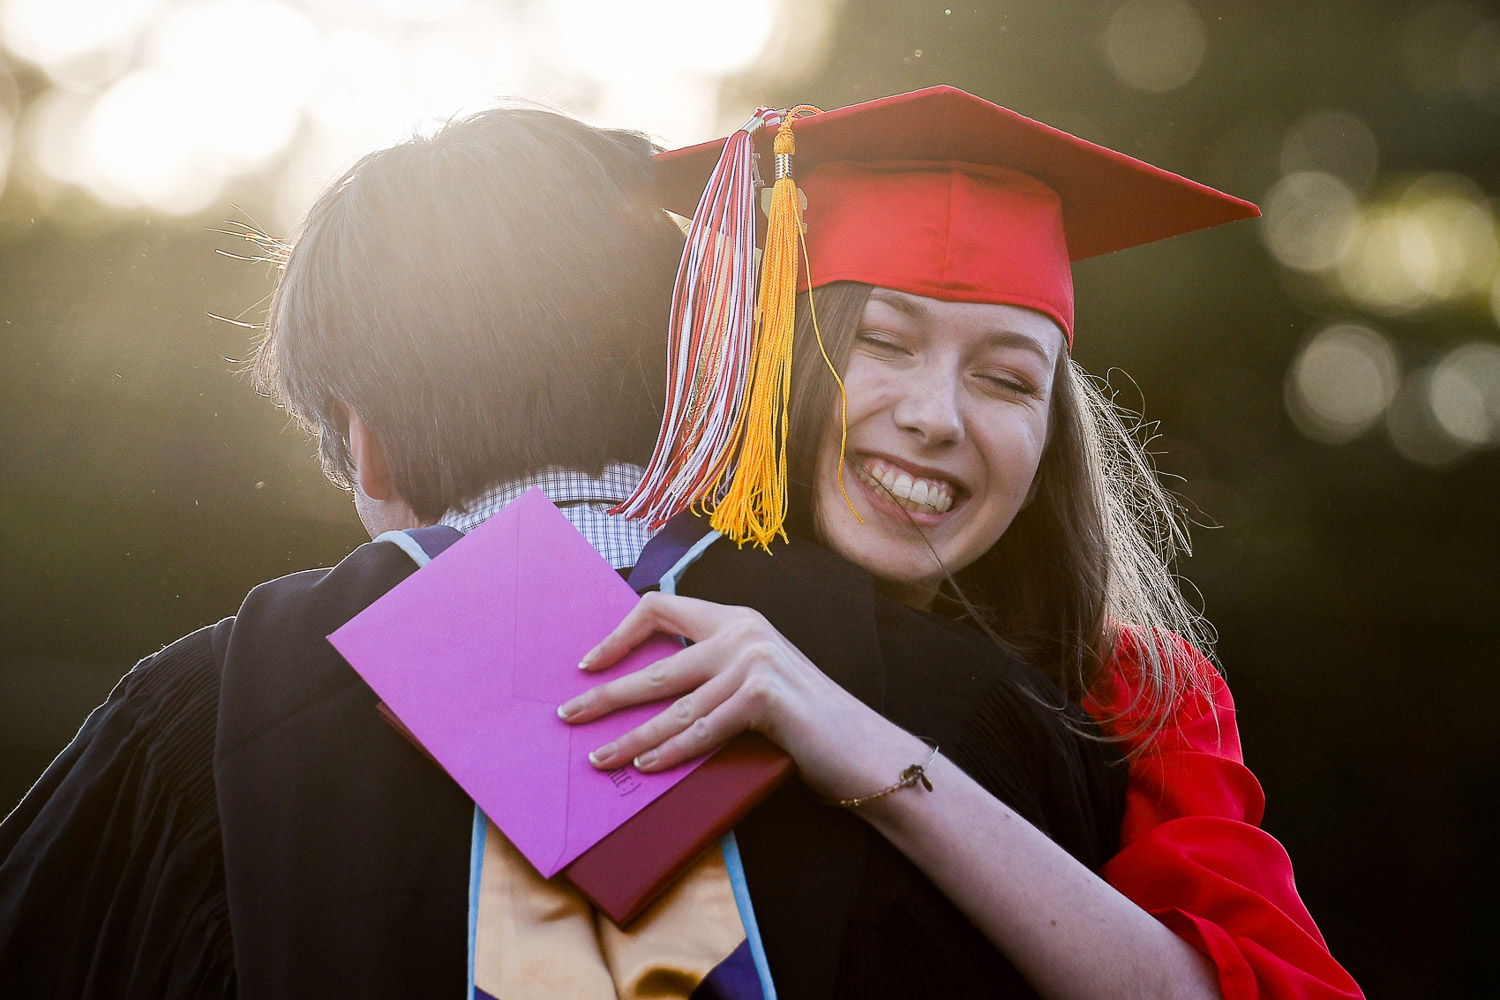 Nikon D500, 1/1,000 @ f/4.0, ISO 100, 70-200mm  Bridget Bright gets a hug after receiving her diploma during the Melrose High School Graduation Ceremony at the Fred Green Memorial Field, Friday, June 2, 2017. [Wicked Local Staff Photo / David Sokol]